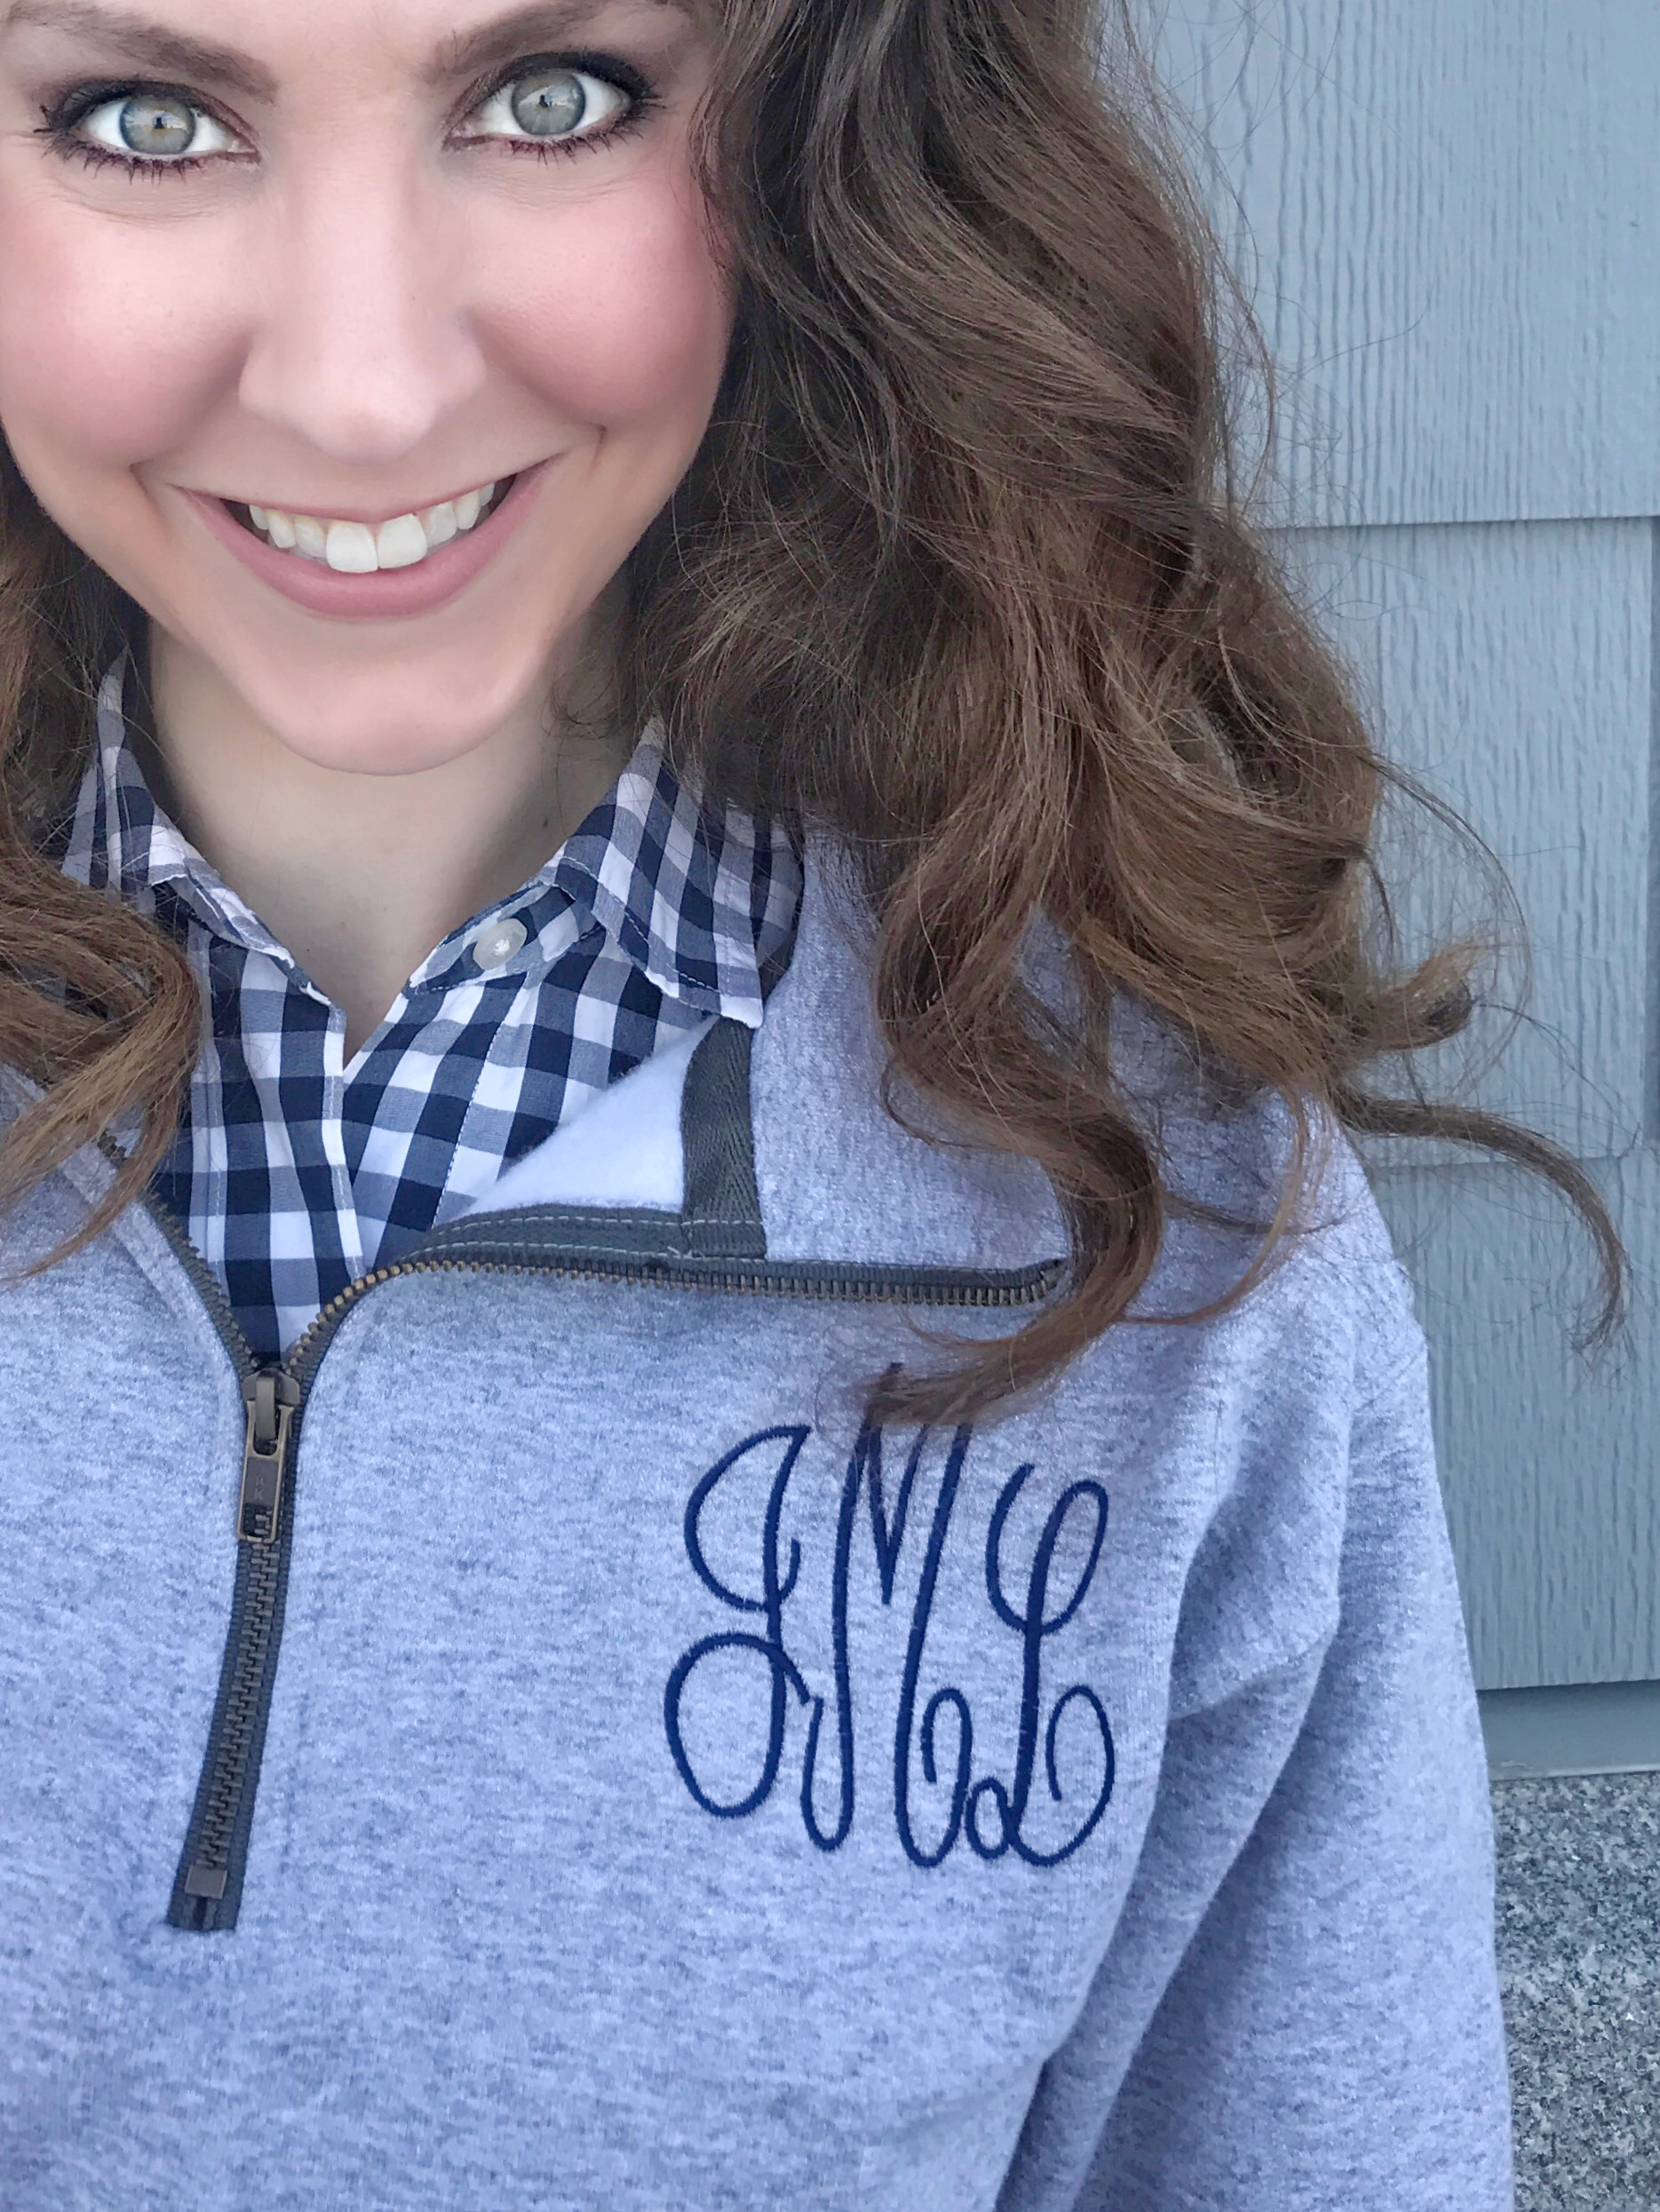 Grey monogrammed Jane pullover, navy gingham Vineyard Vines button up shirt, navy Hunter rain boots - February beach day in New England - From the Closet - From the Family with Love